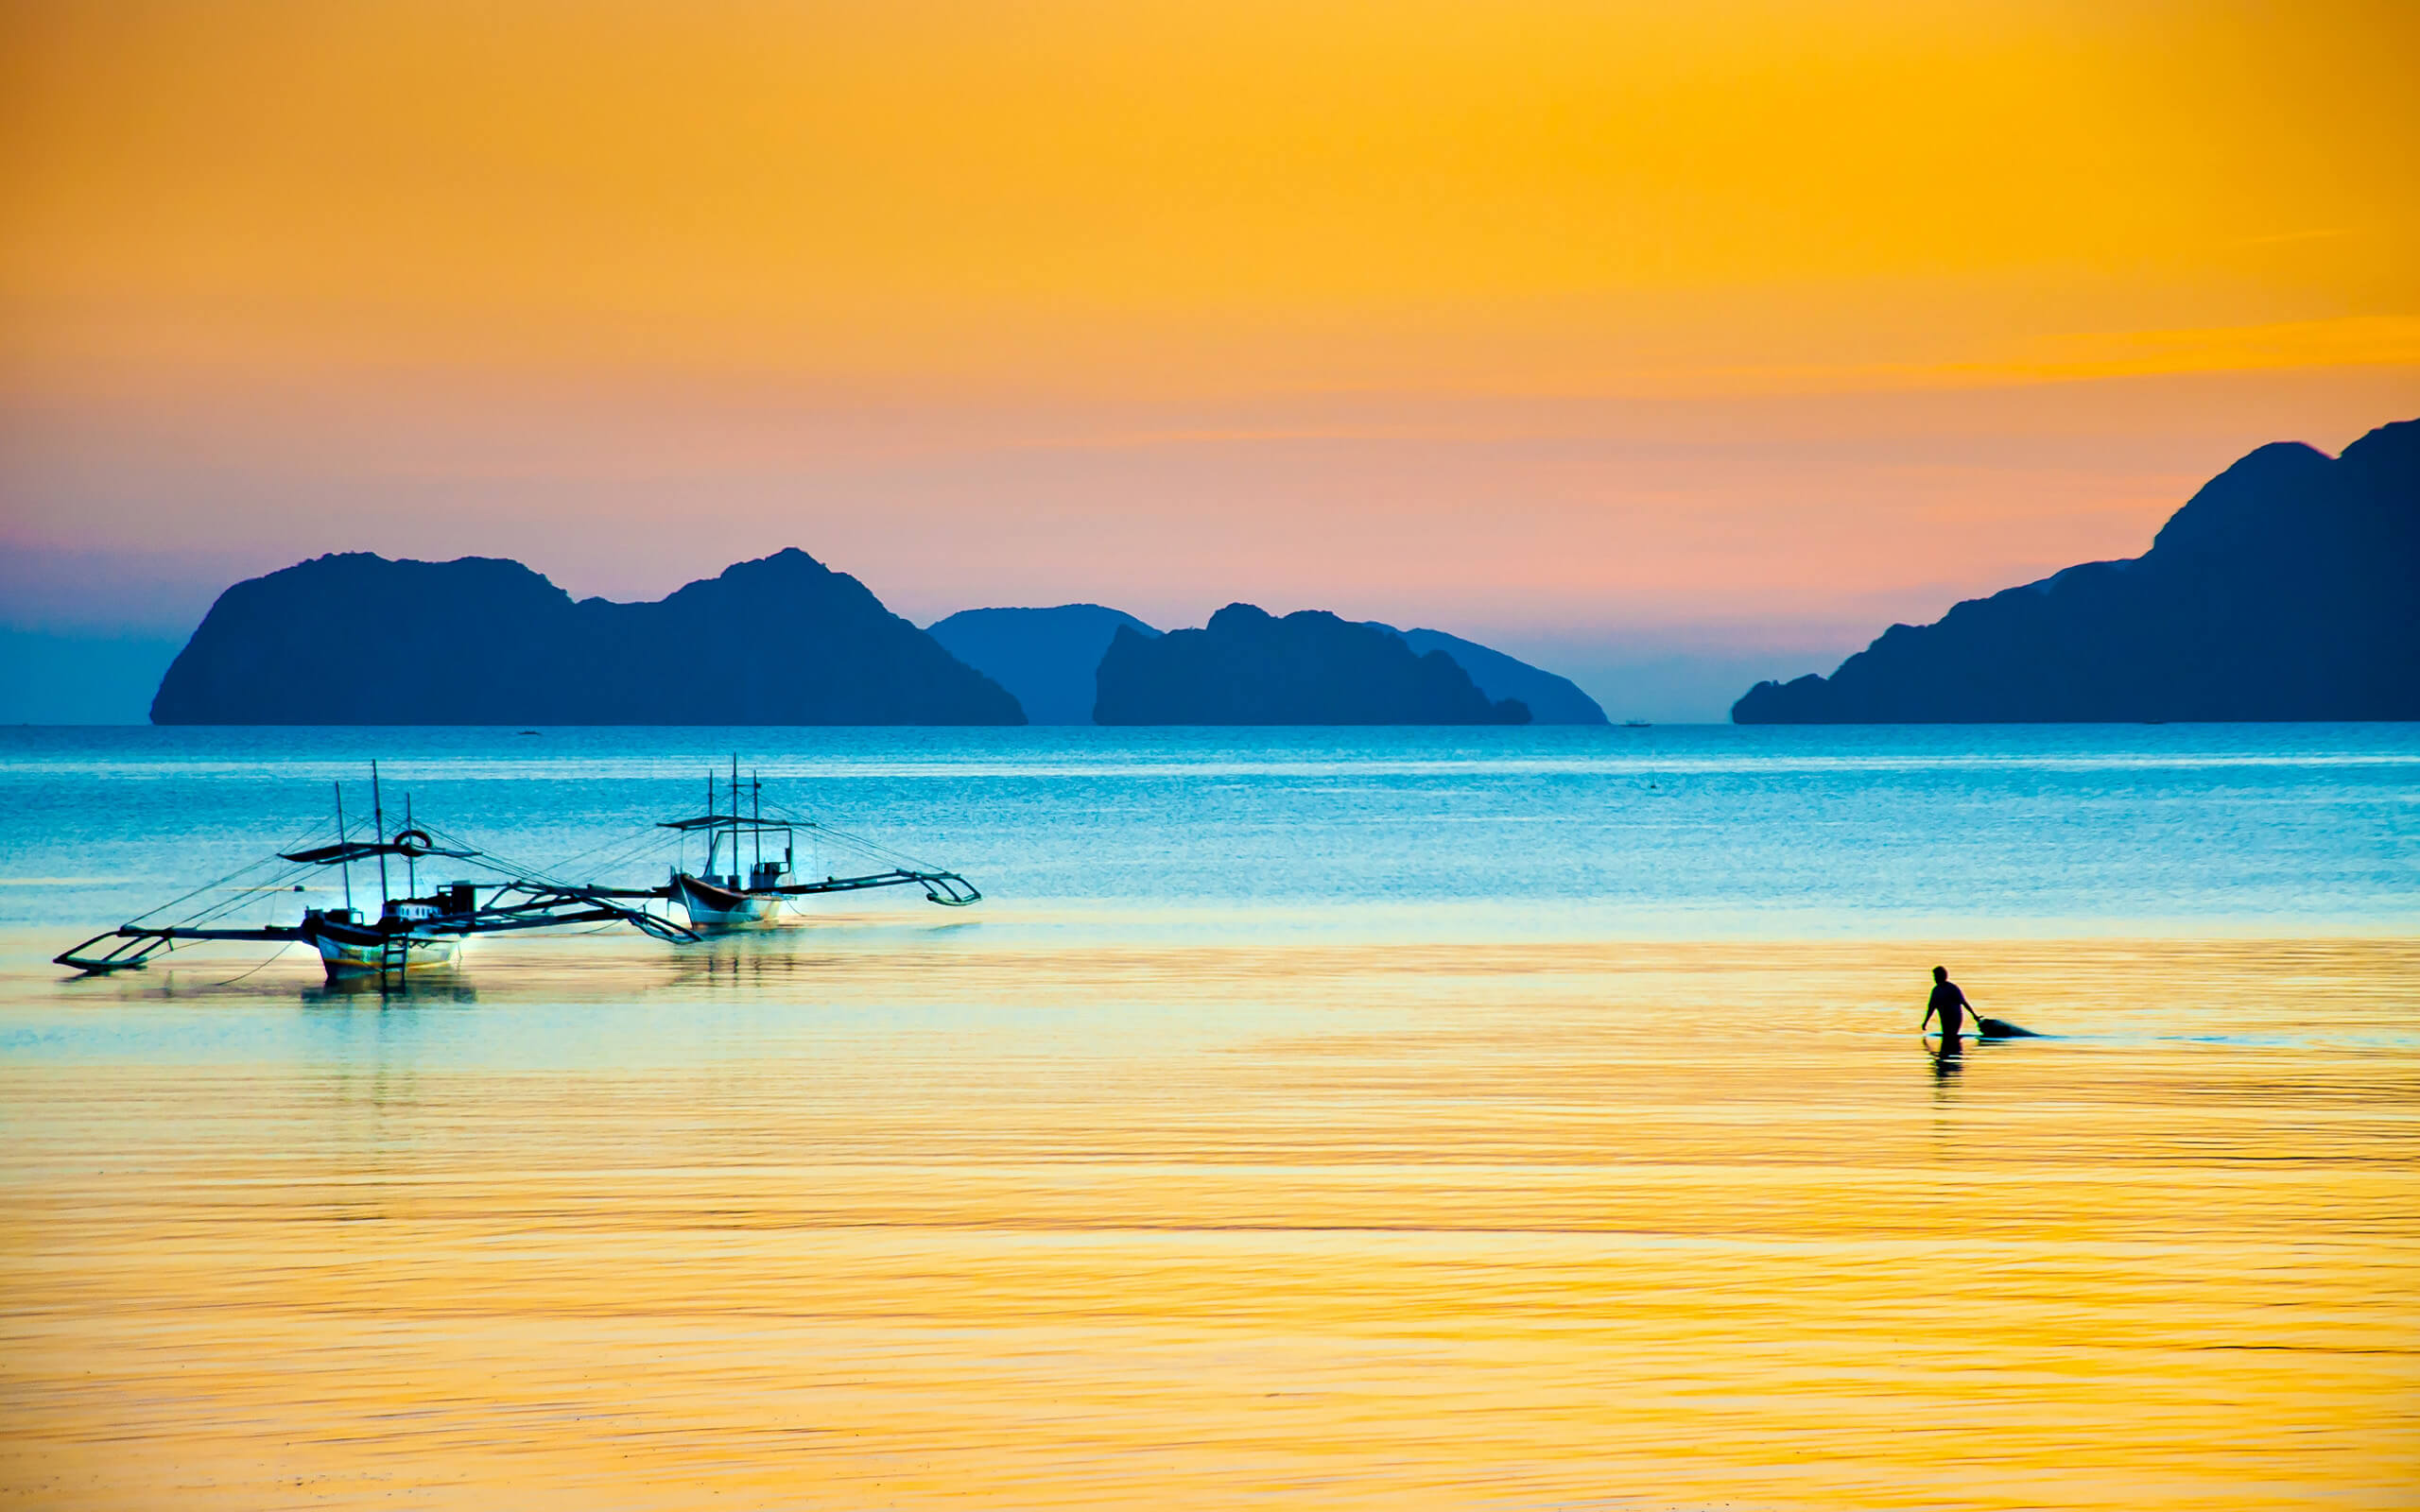 Top 26 Best Beaches in the Philippines - Most Beautiful